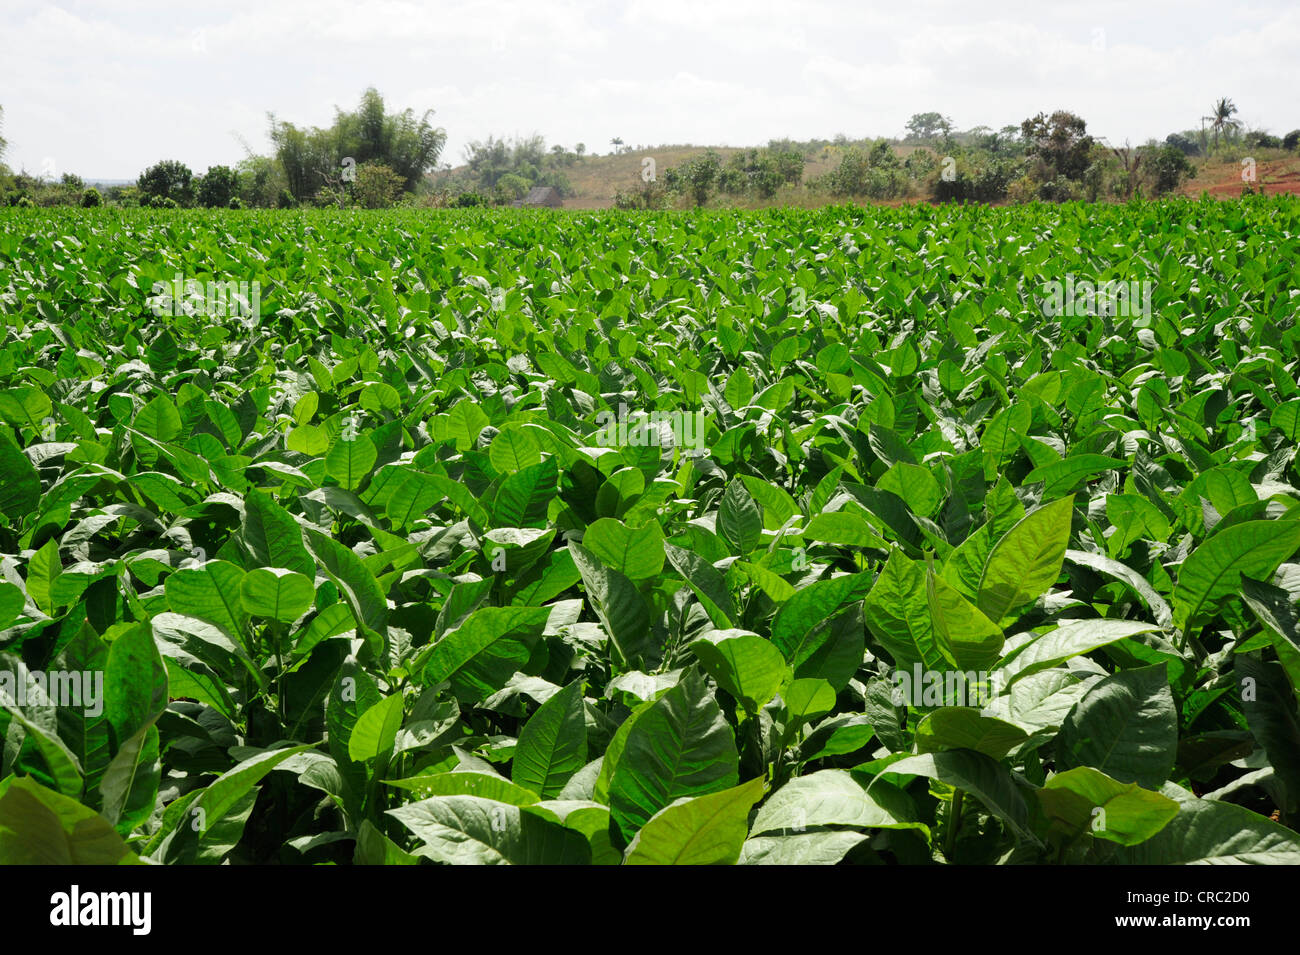 Tobacco leaves, tobacco plant (Nicotiana), tobacco plantation, farming in the Valle de Vinales national park - Stock Image